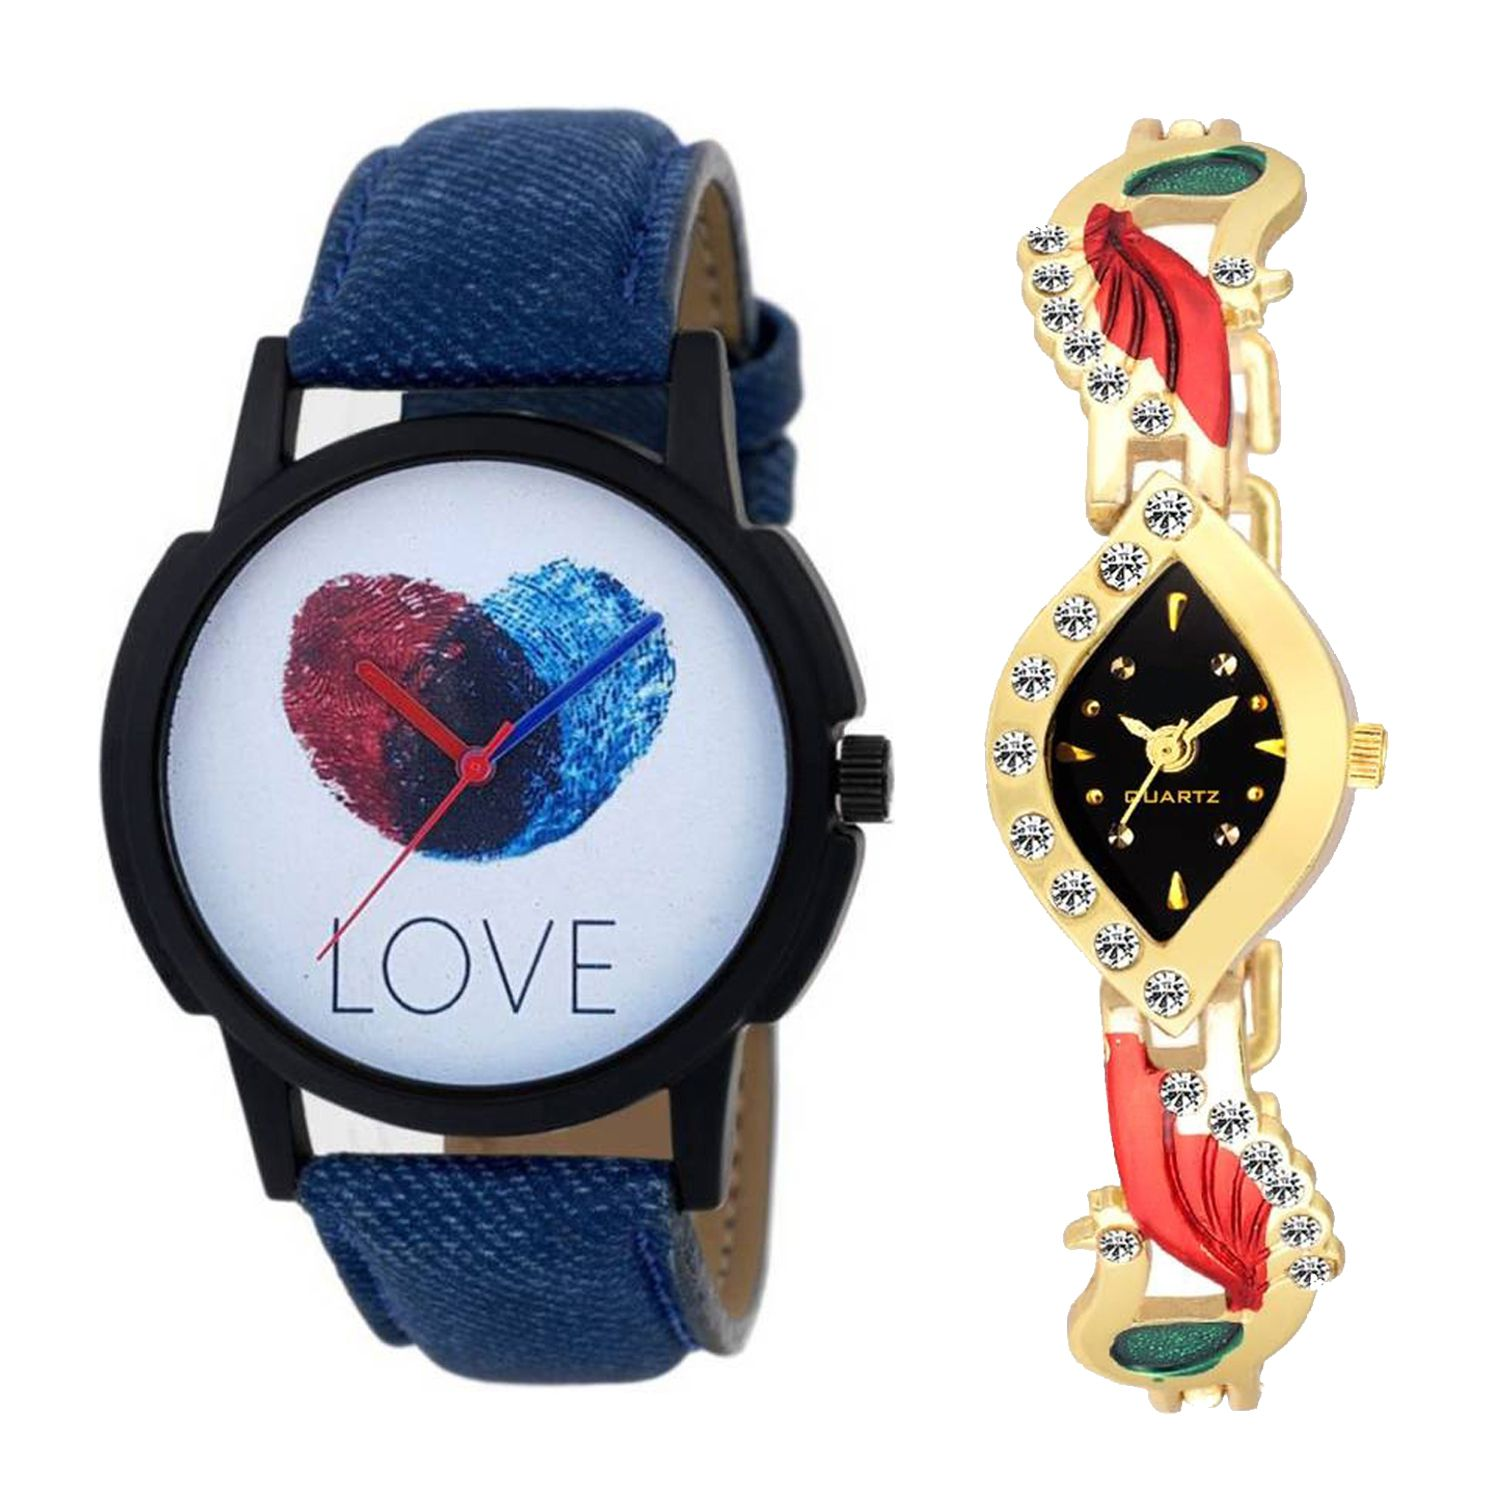 a4b8130077 OD-C2-0L22 New Arrival Stylish Combo Couple Watch For Boys & Girls Price in  India: Buy OD-C2-0L22 New Arrival Stylish Combo Couple Watch For Boys &  Girls ...